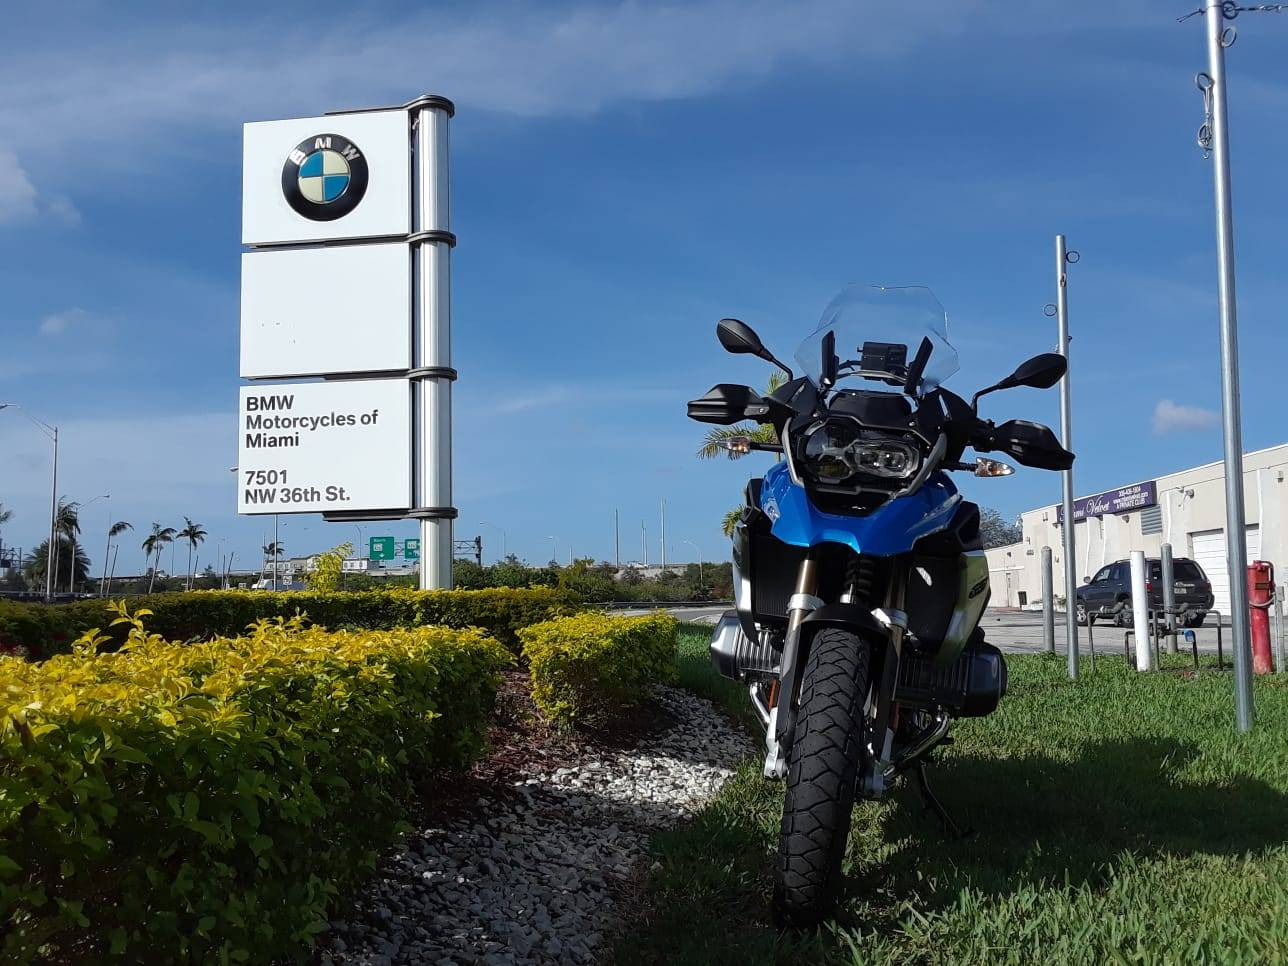 New 2019 BMW R 1250 GS for sale, New BMW R 1250GS, BMW R1250GS for sale, 1250GS, R1250GS, BMW Motorcycles of Miami, Motorcycles of Miami. Motorcycles Miami - Photo 1